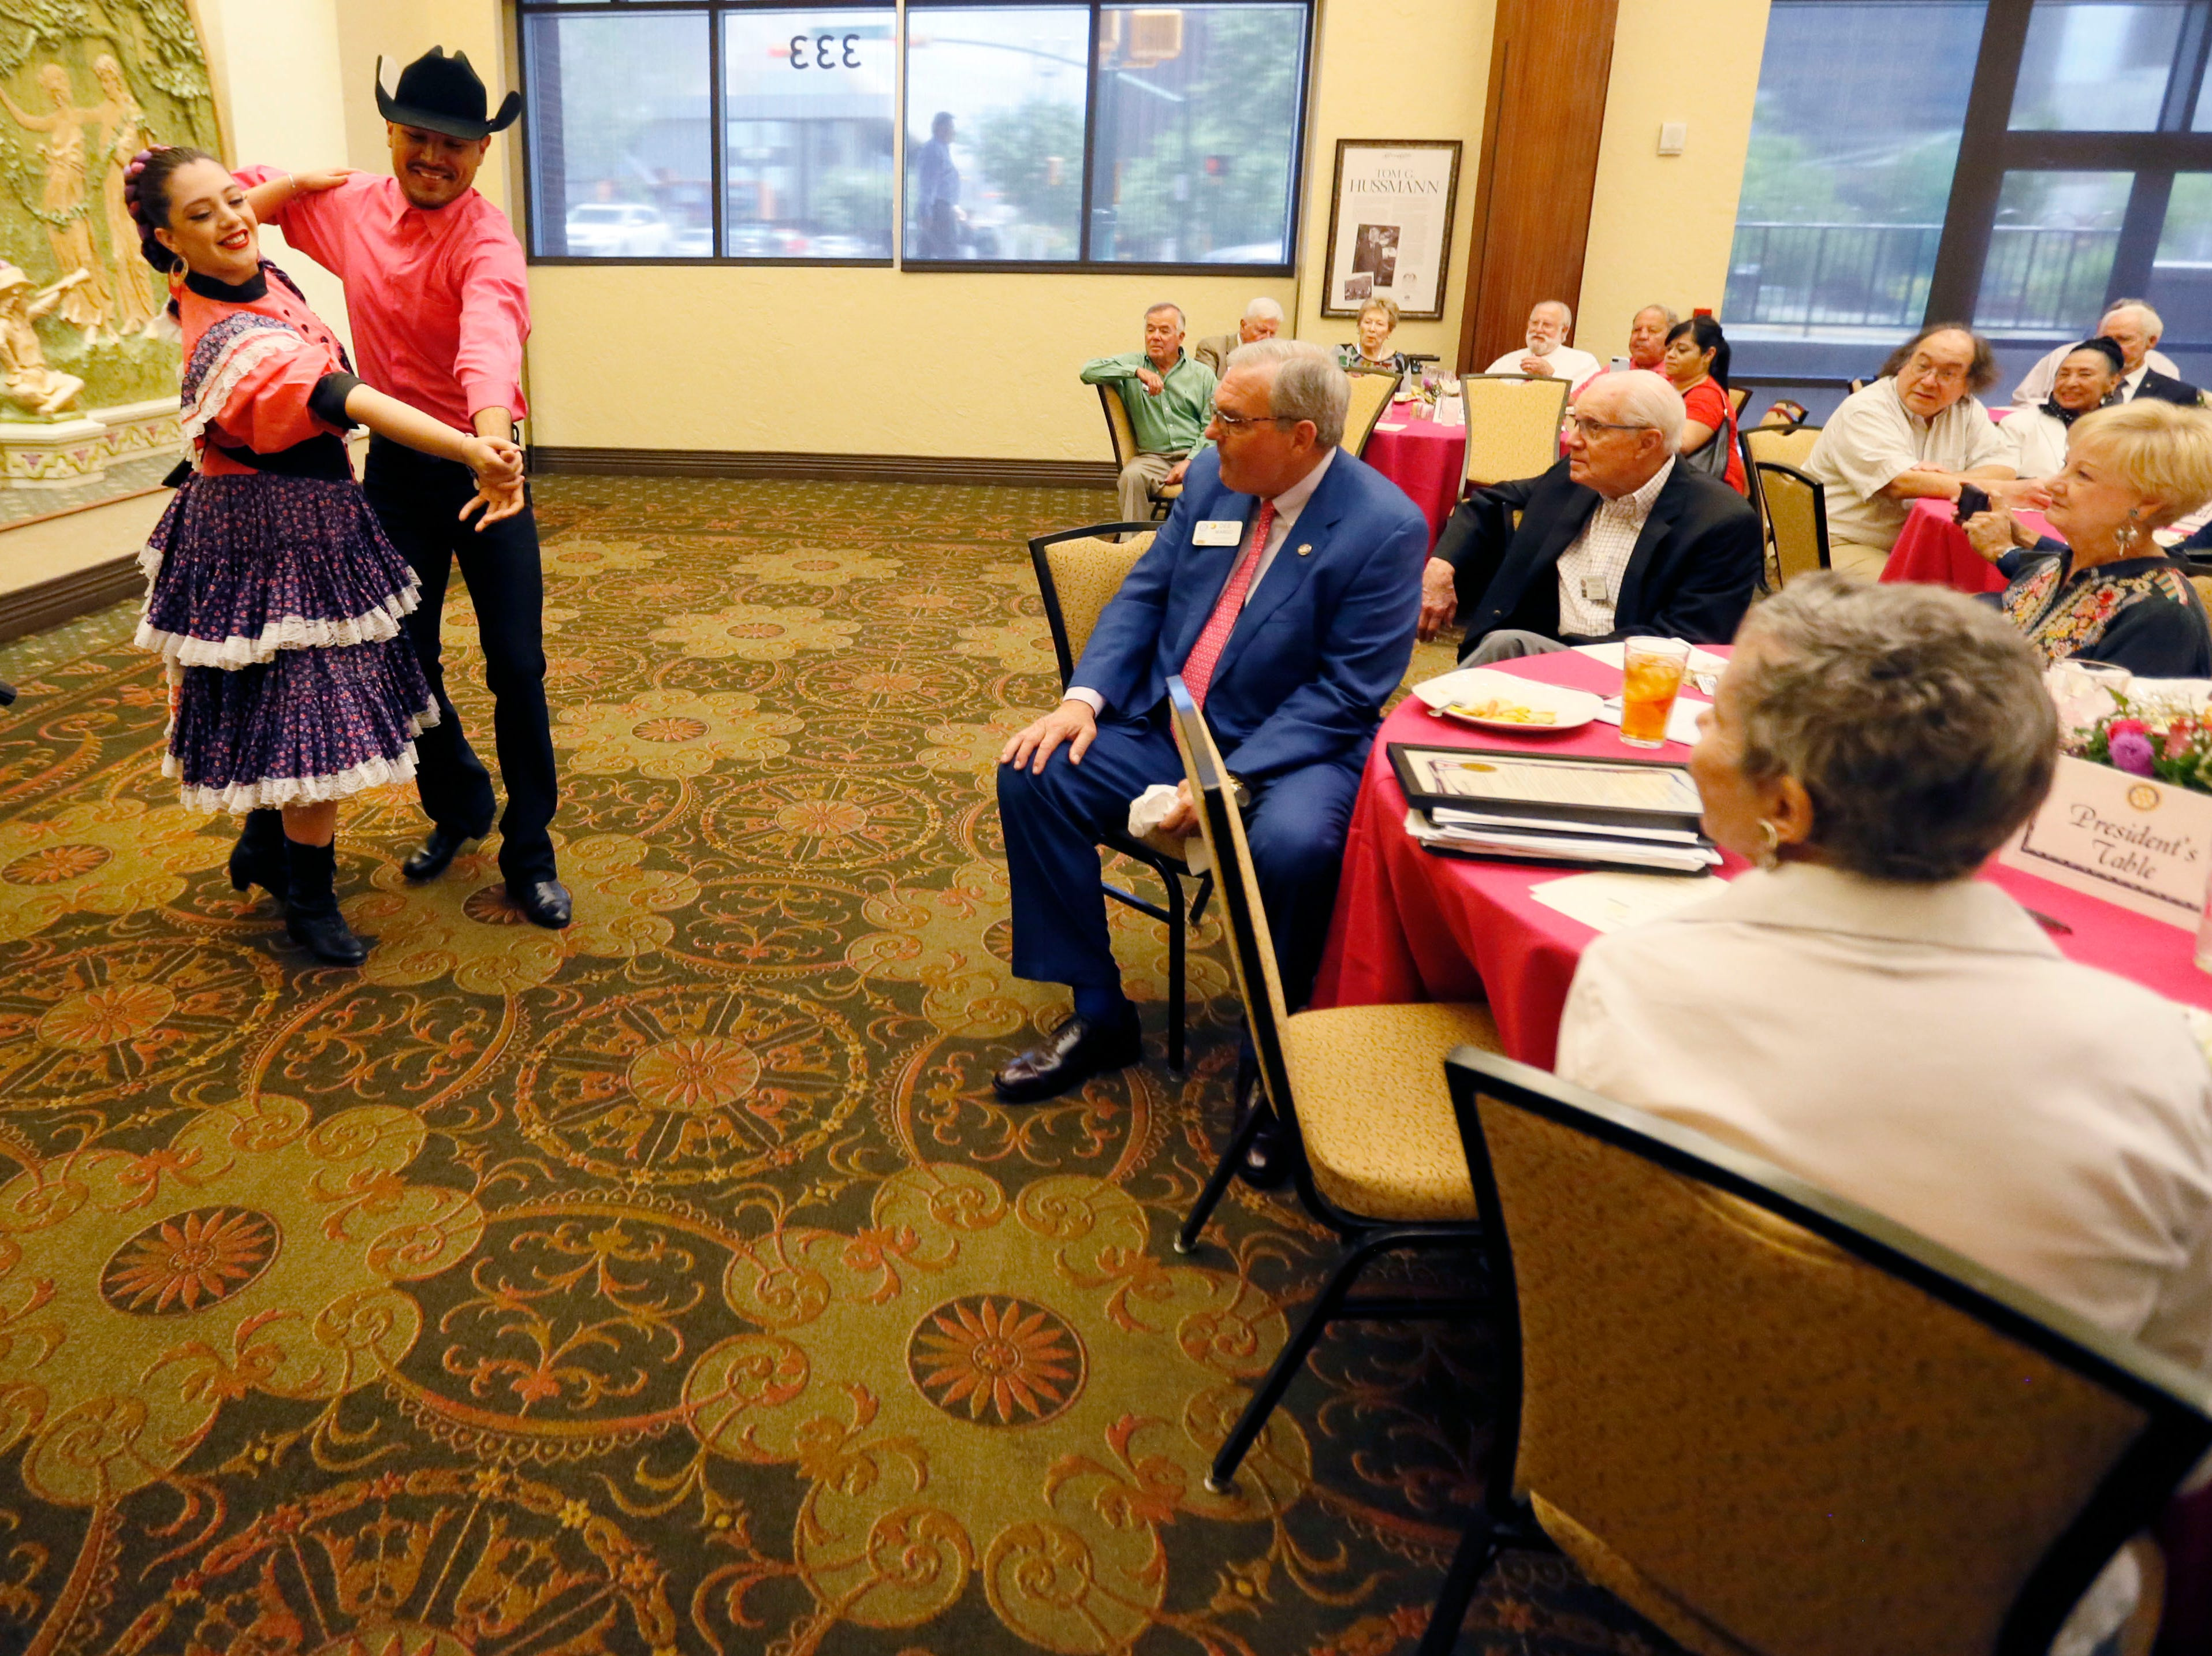 Mariana Fernandez and Ricardo Gallegos perform folklorico for the Rotary Club of El Paso before Rosa Guerrero is awarded the Distinguished Service Award Thursday, May 9, at the El Paso Community Foundation Room.